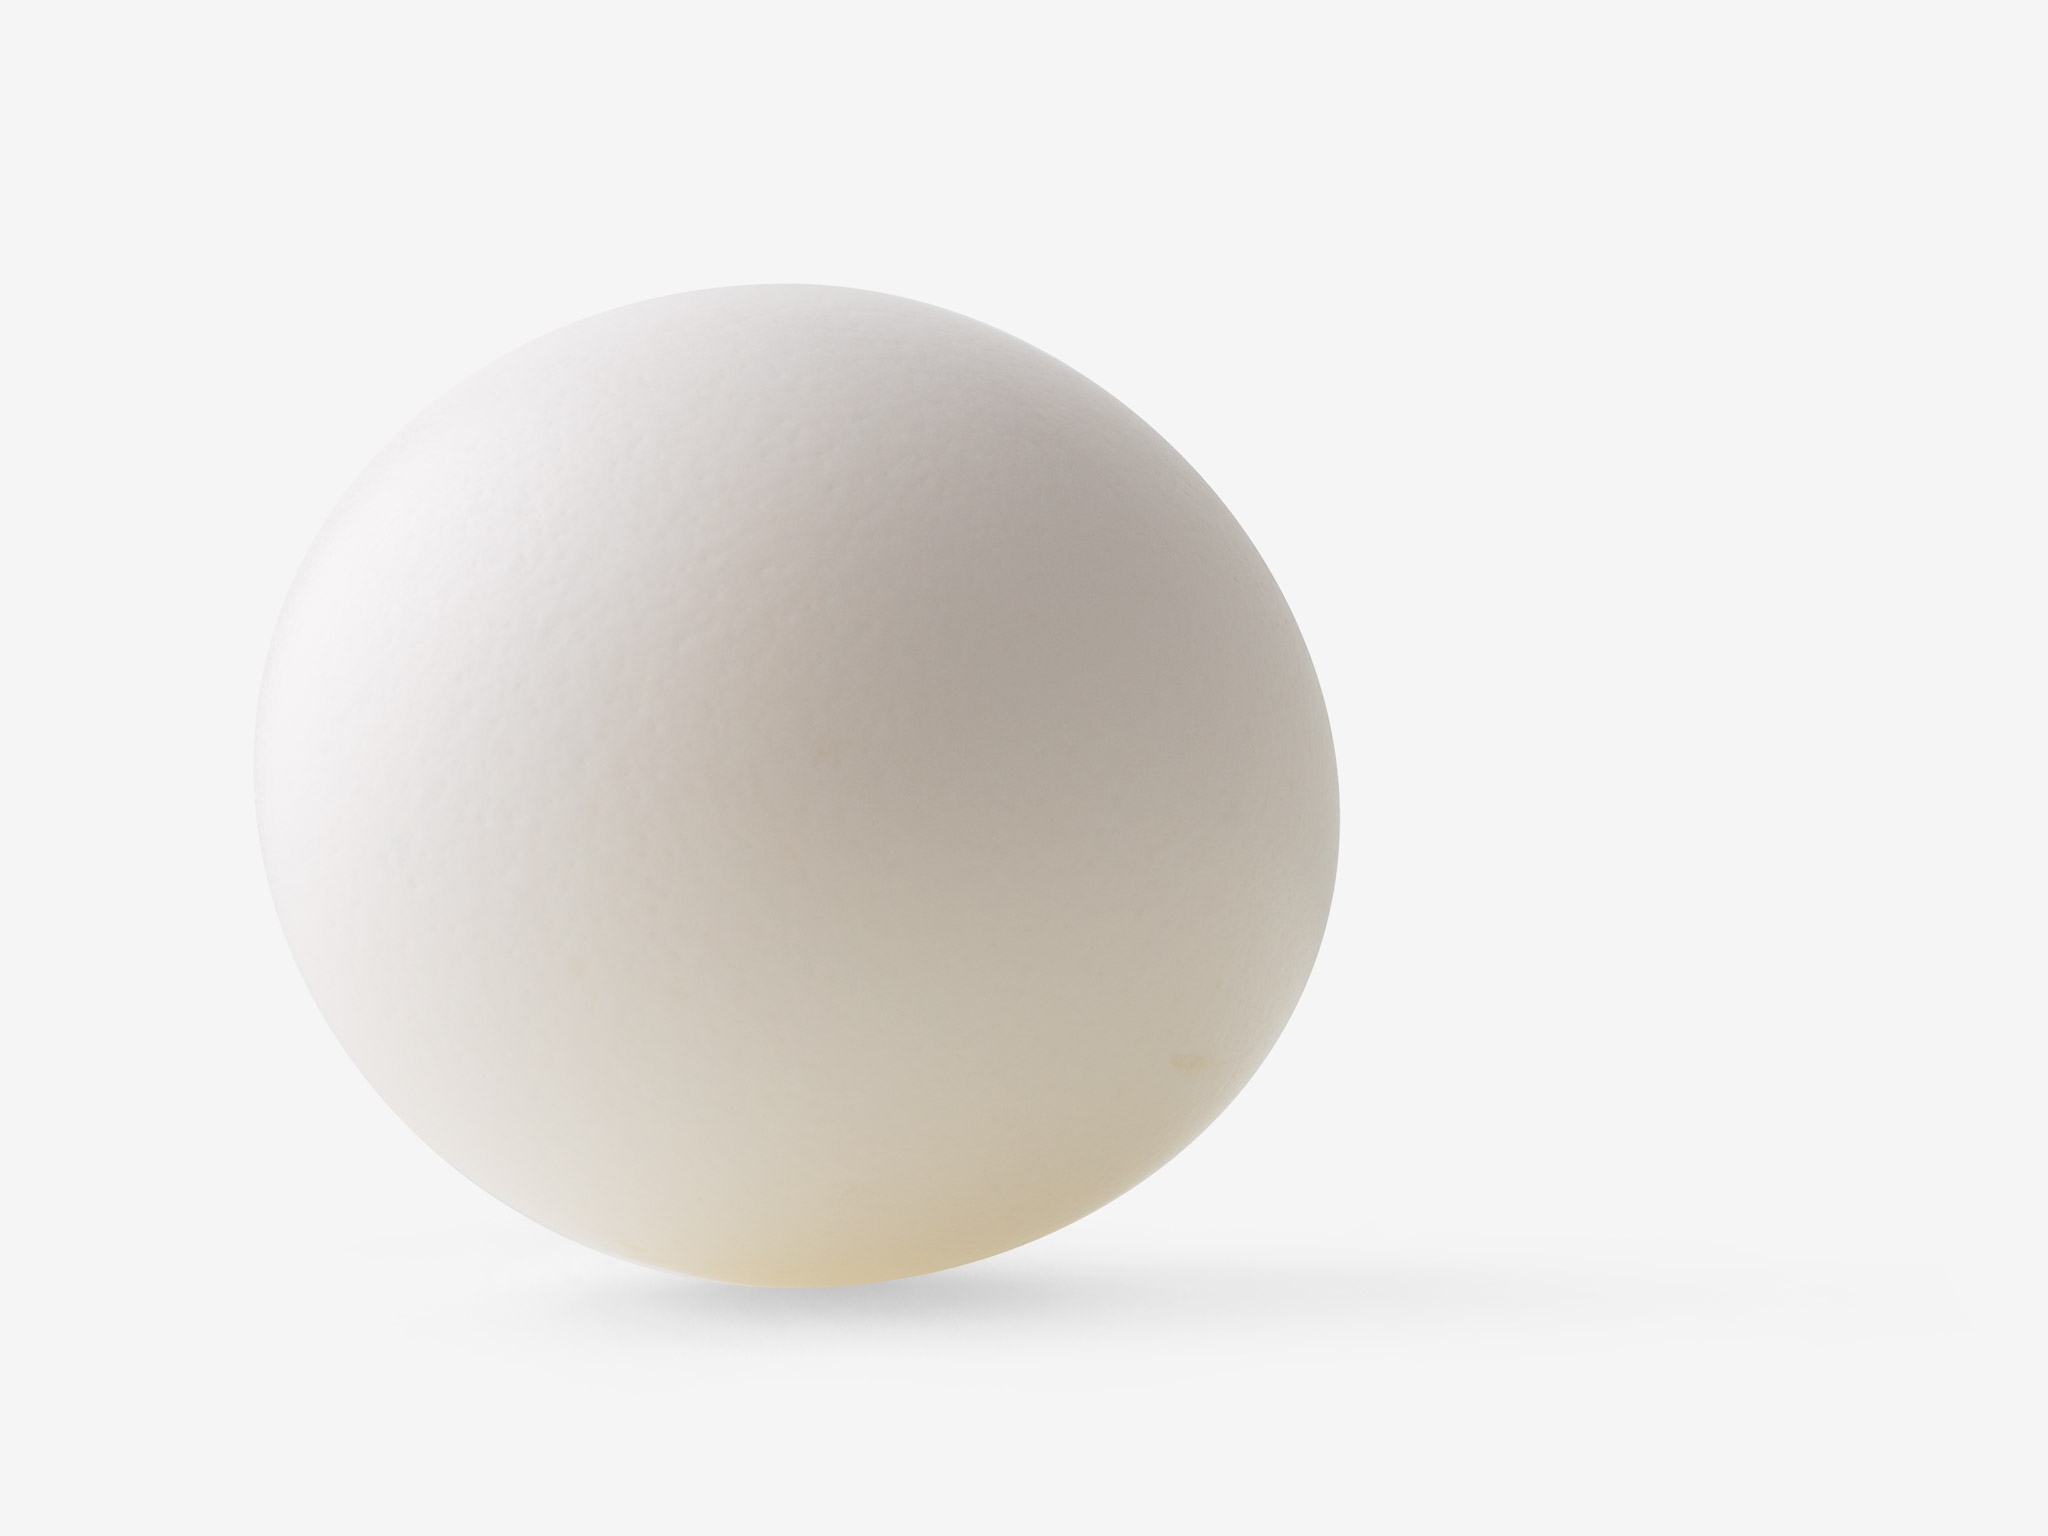 Egg image with transparent background